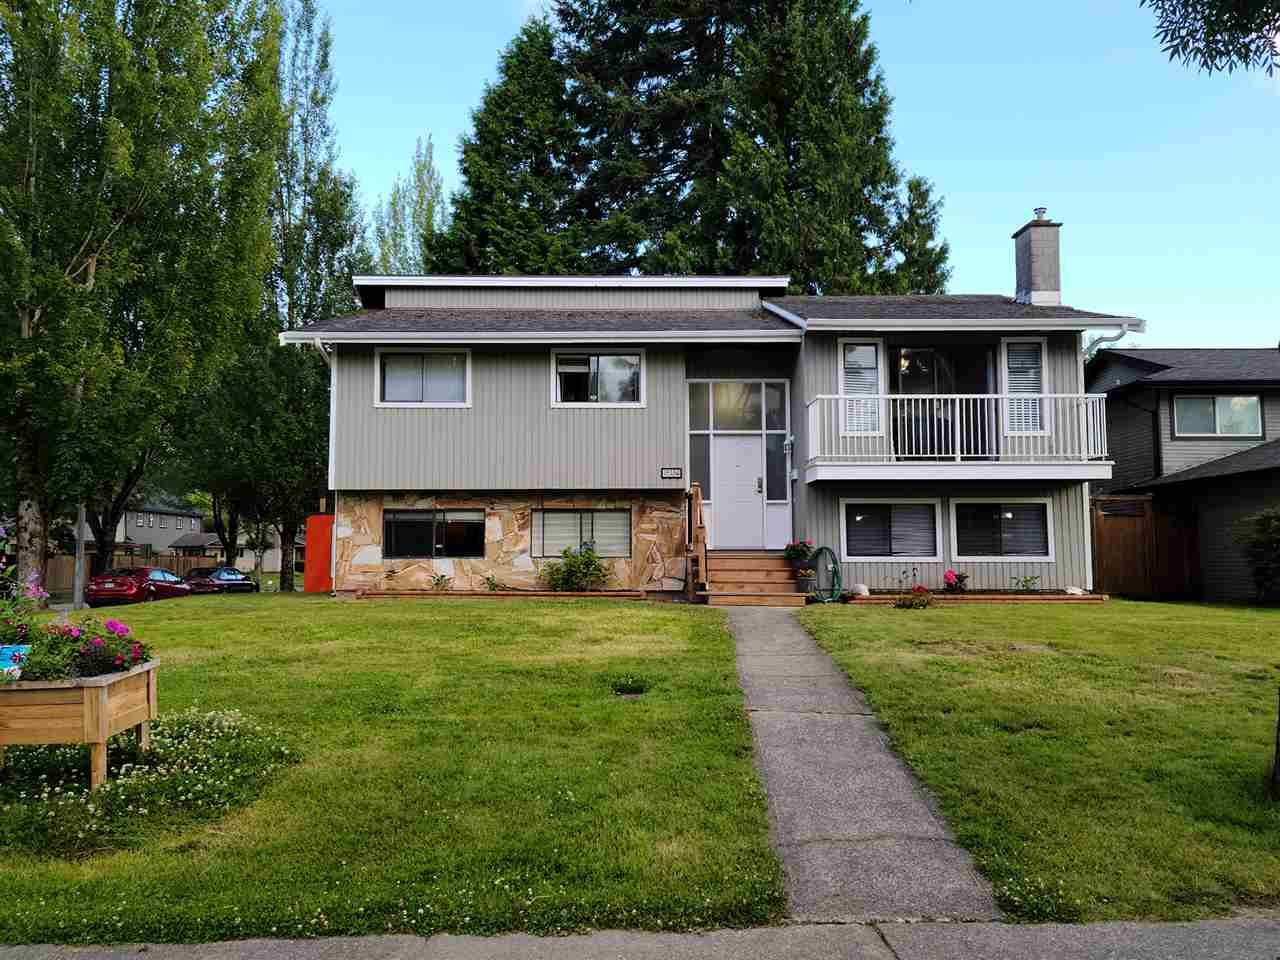 Main Photo: 15134 93A Avenue in Surrey: Fleetwood Tynehead House for sale : MLS®# R2473316